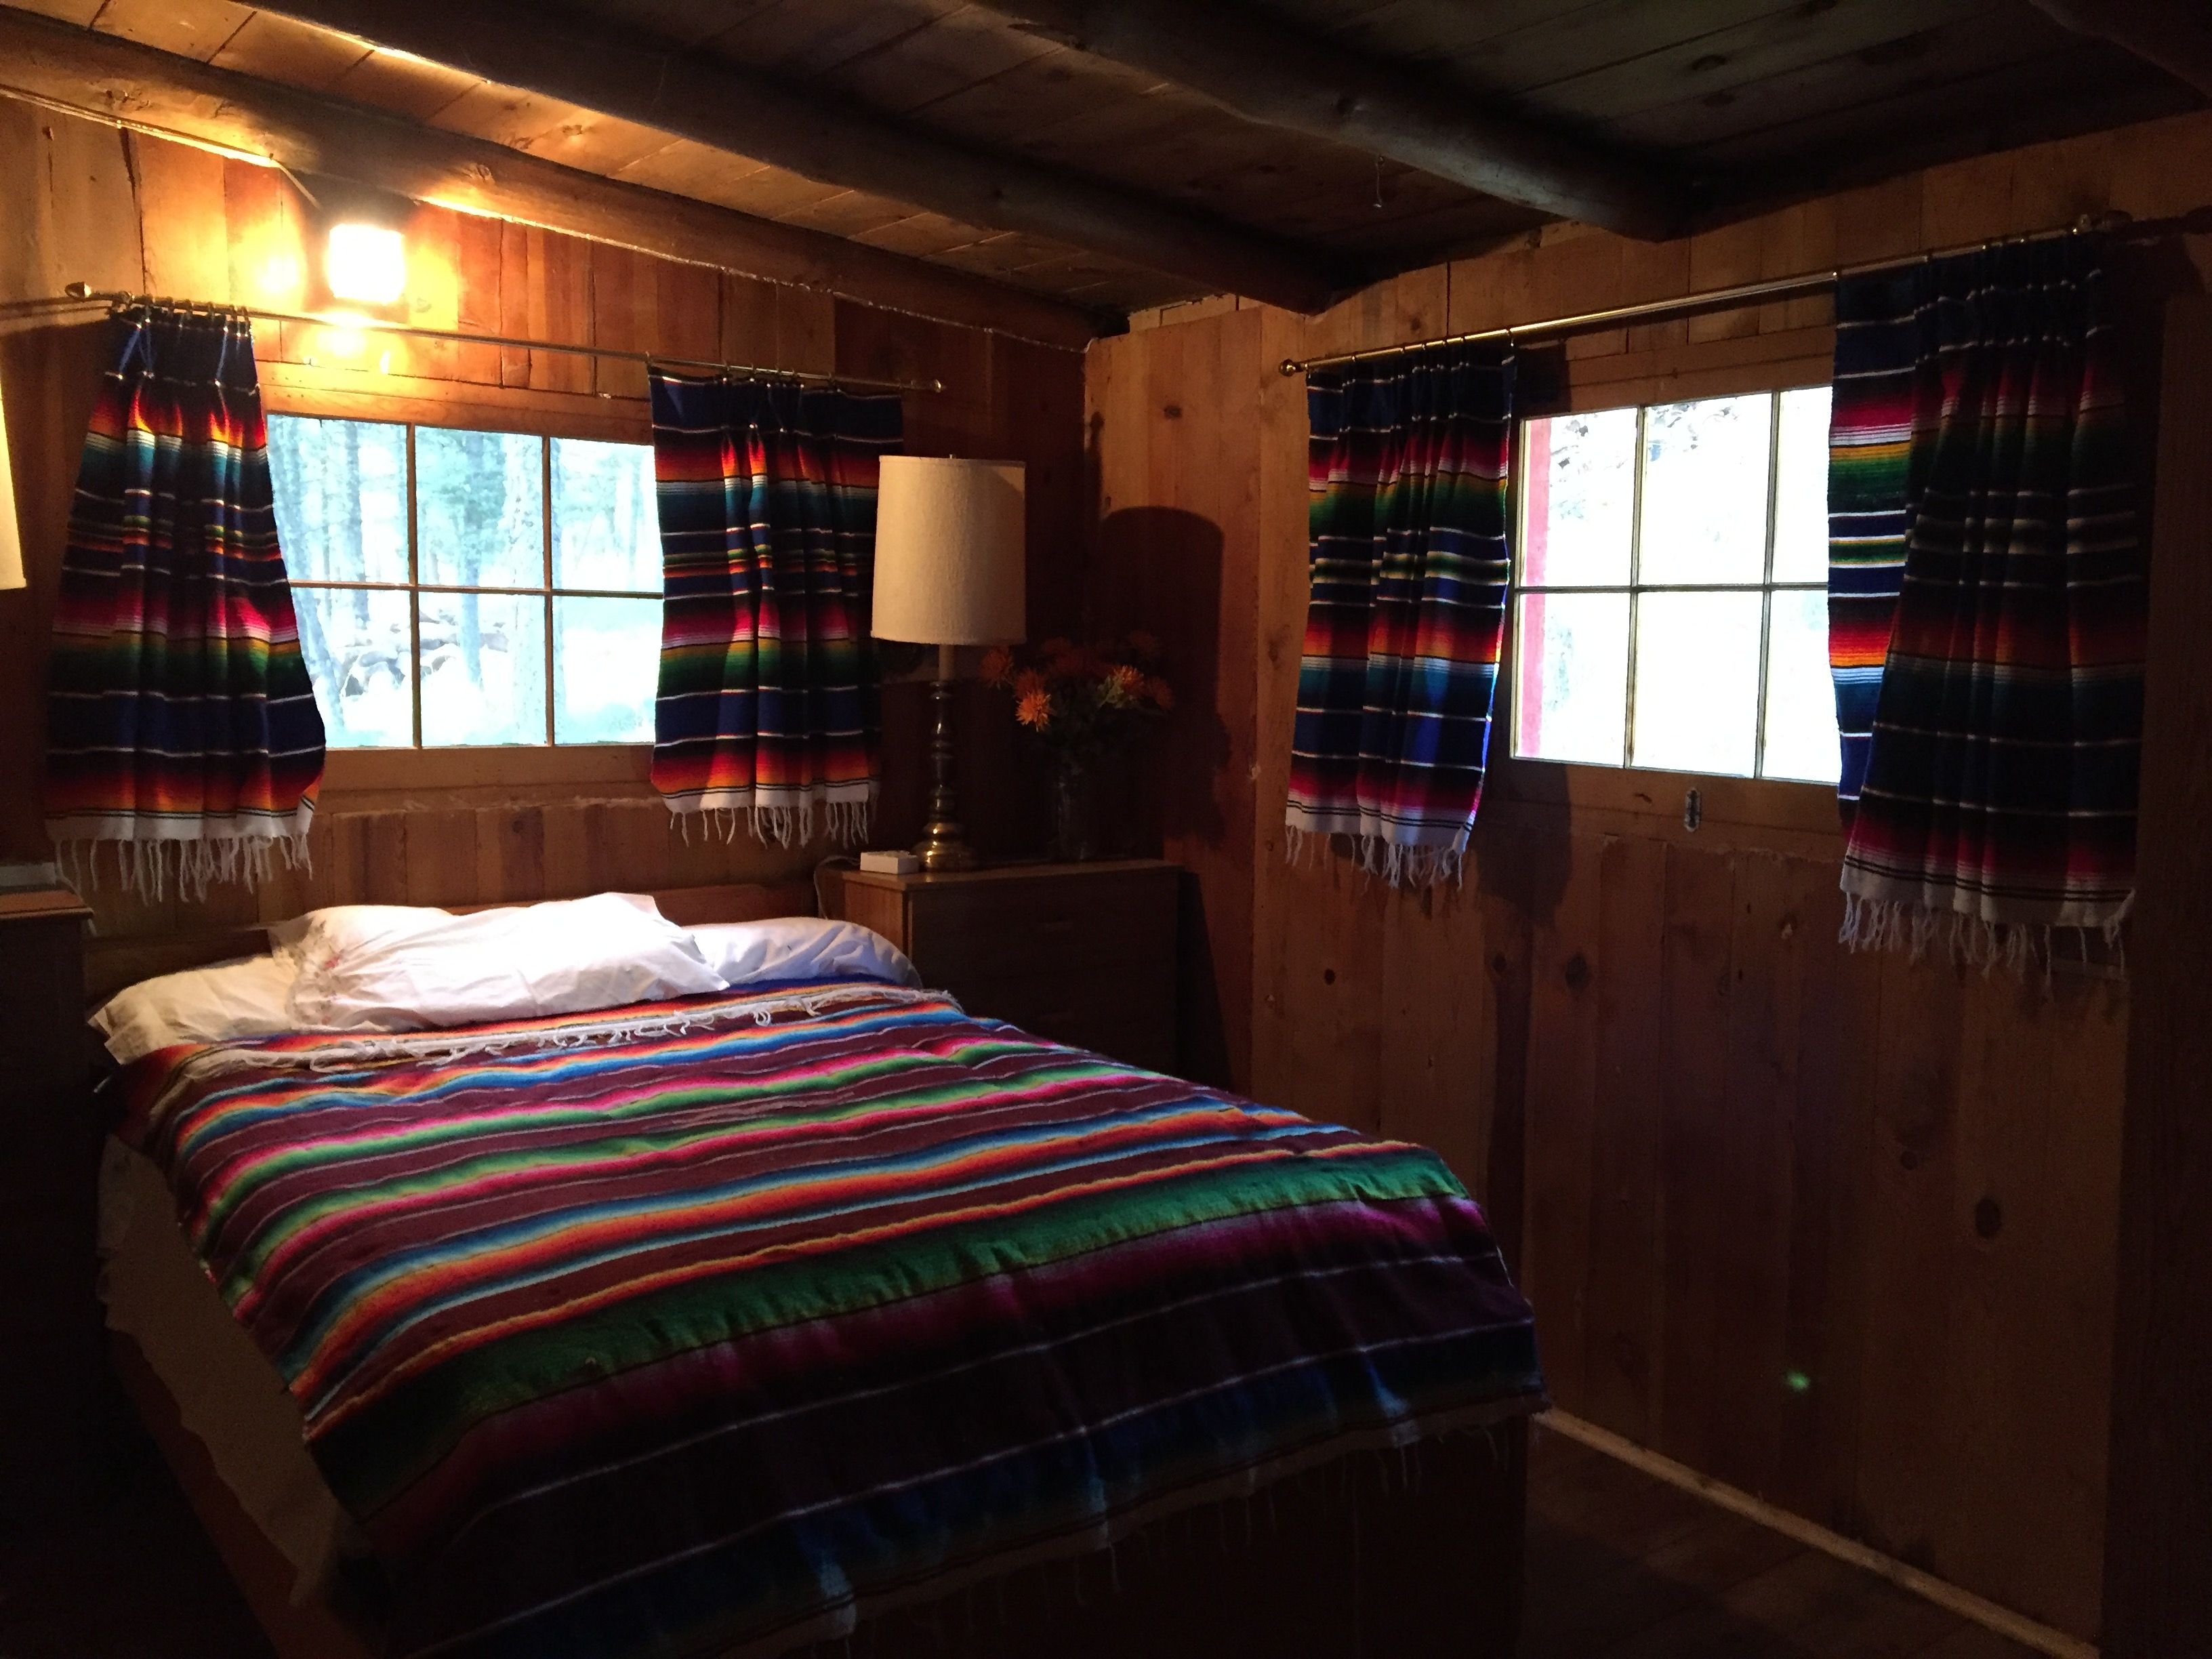 Here is a view with the curtains open. They are made from serape blankets. The rods are hung far to each side to accommodate the window when it is open. It opens up and there is a latch on the ceiling to hold the window open.